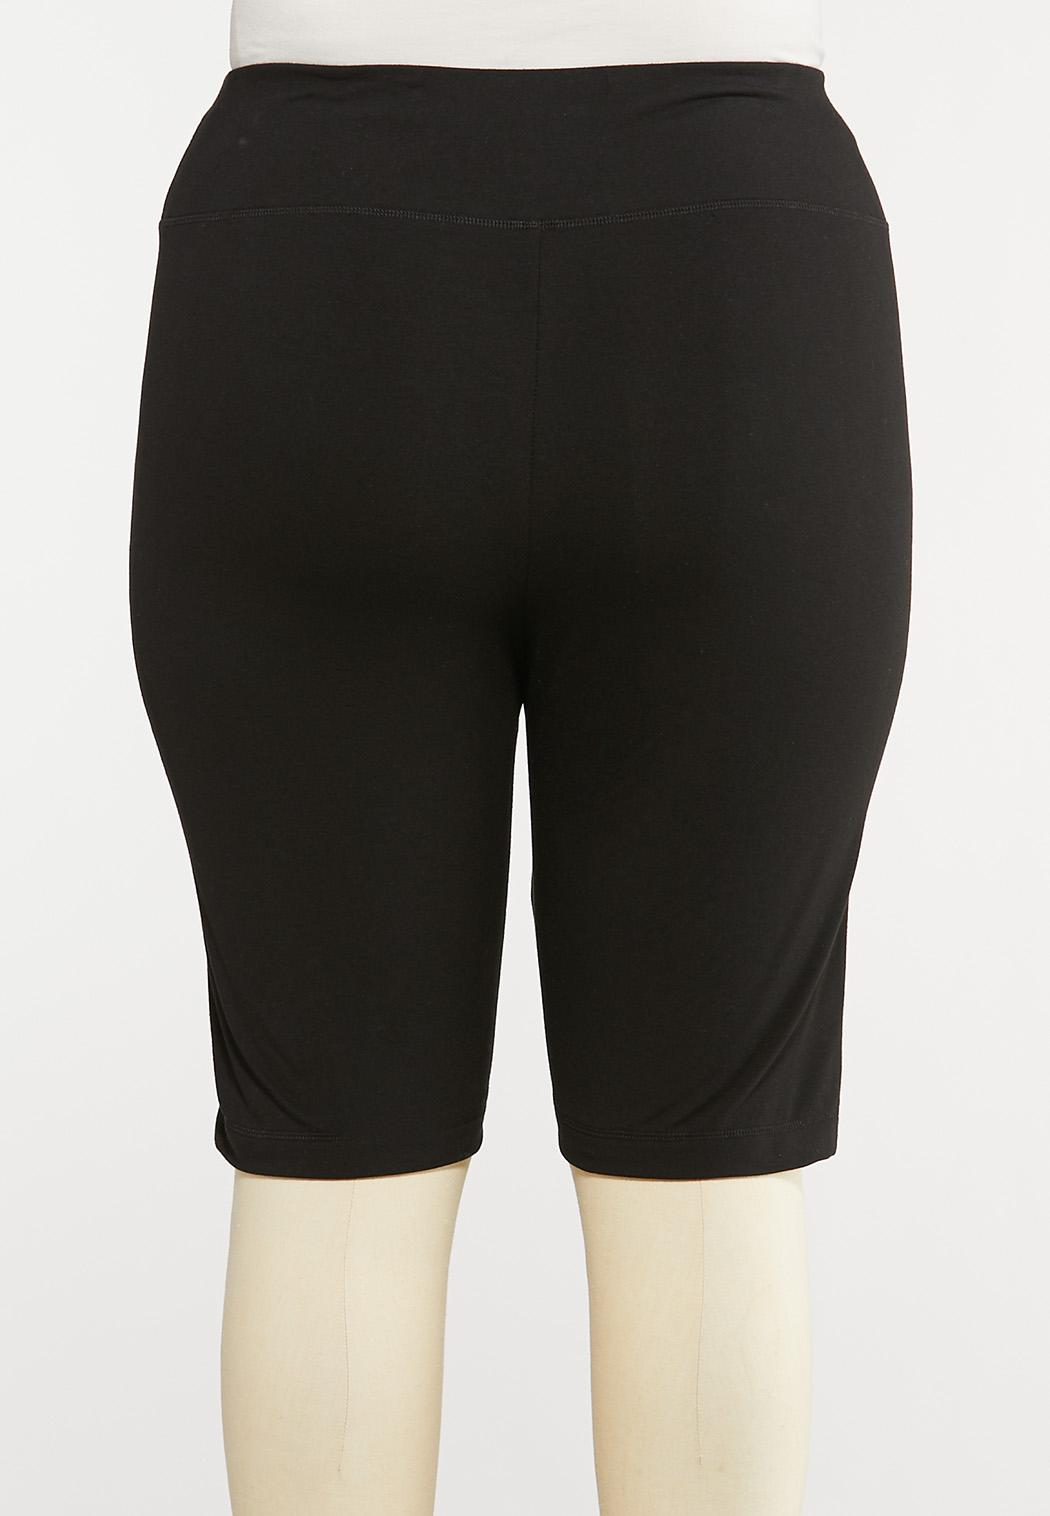 Plus Size Pull-On Stretch Shorts (Item #44592525)